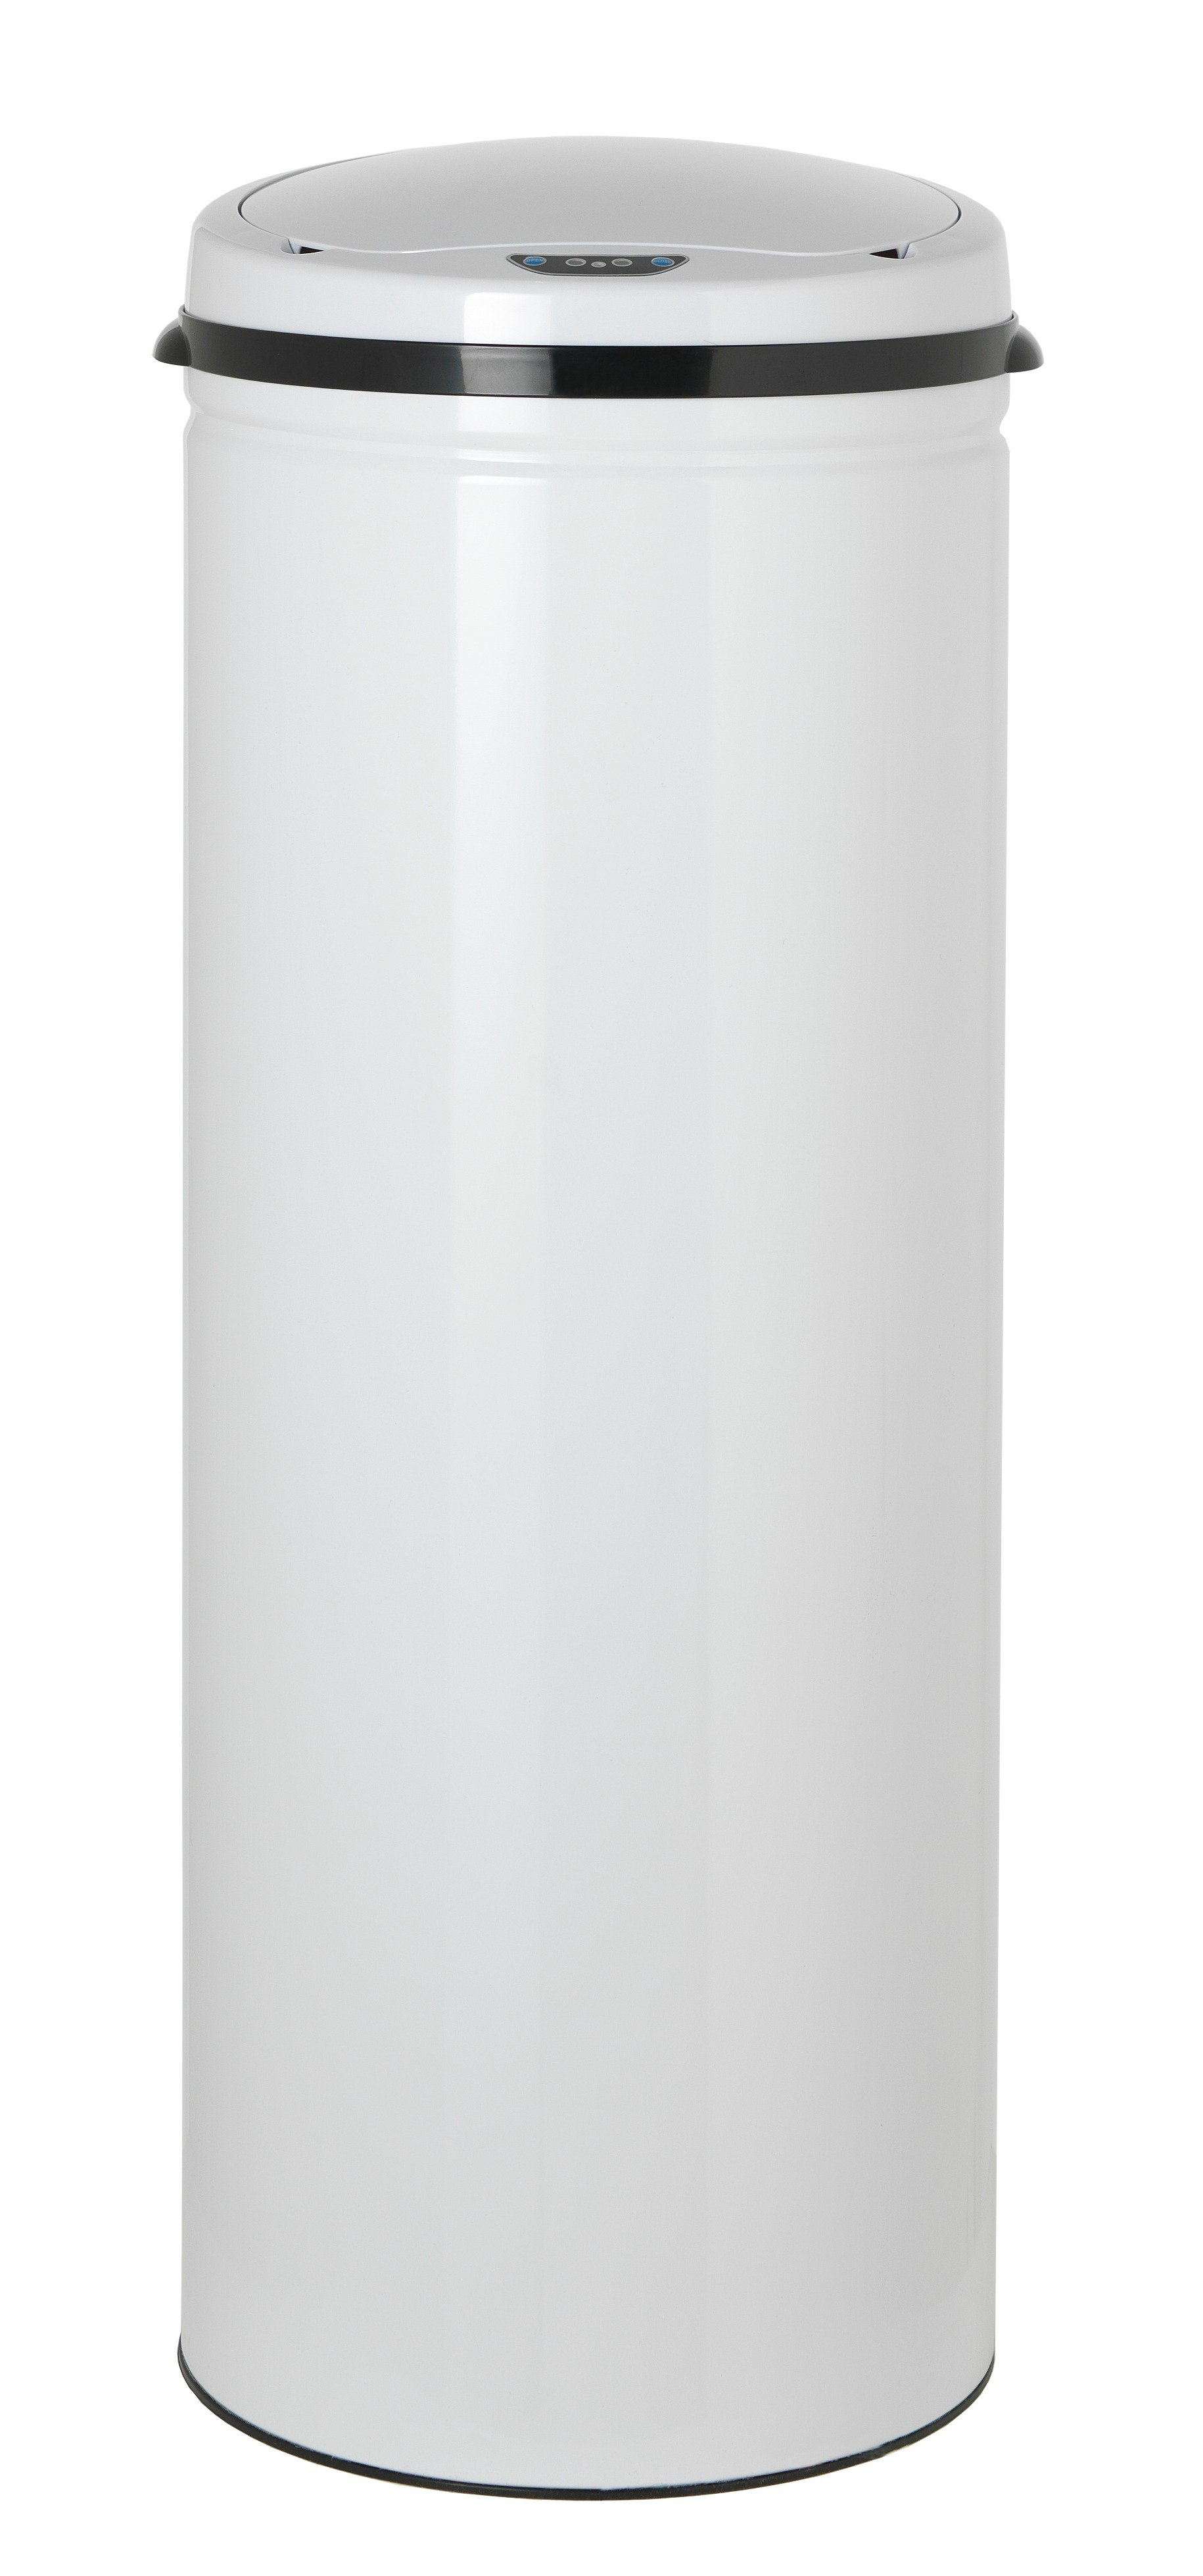 White Kitchen Bin buy russell hobbs 50l kitchen sensor bin - white at argos.co.uk